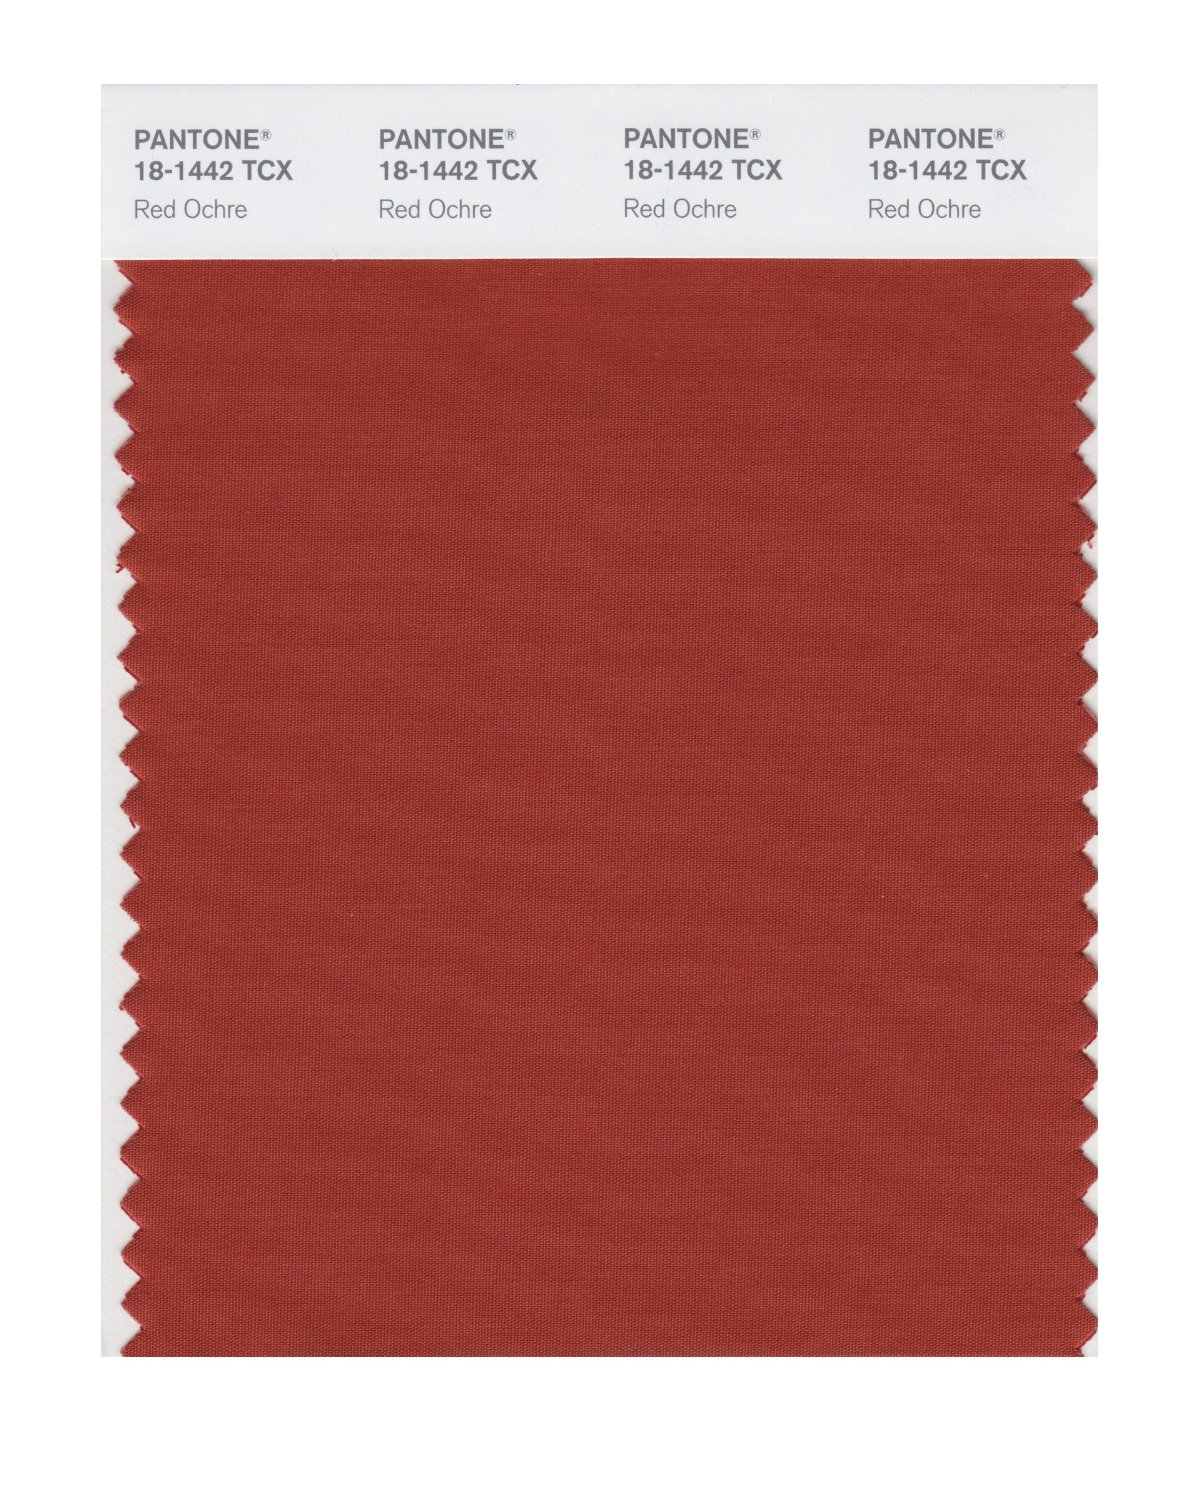 Pantone Smart Swatch 18-1442 Red Ochre